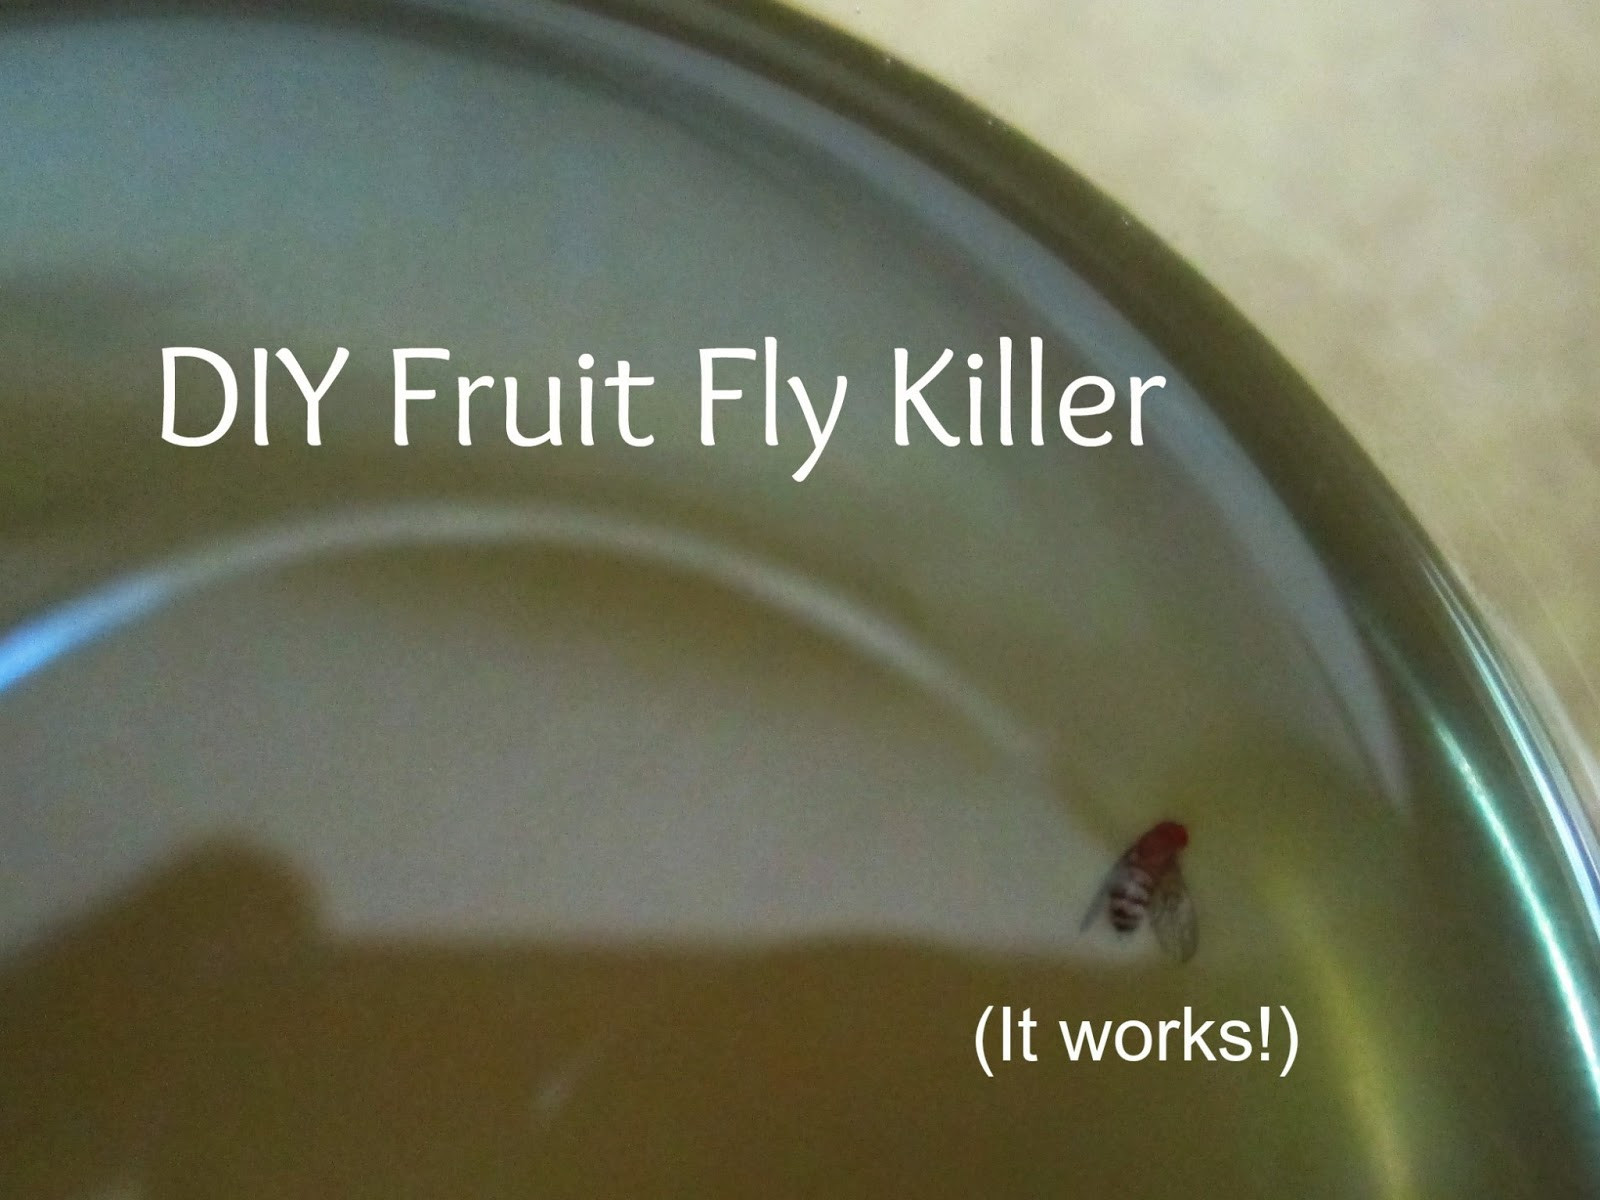 Best ideas about DIY Fly Killer . Save or Pin THE REHOMESTEADERS DIY Fruit Fly Killer Now.